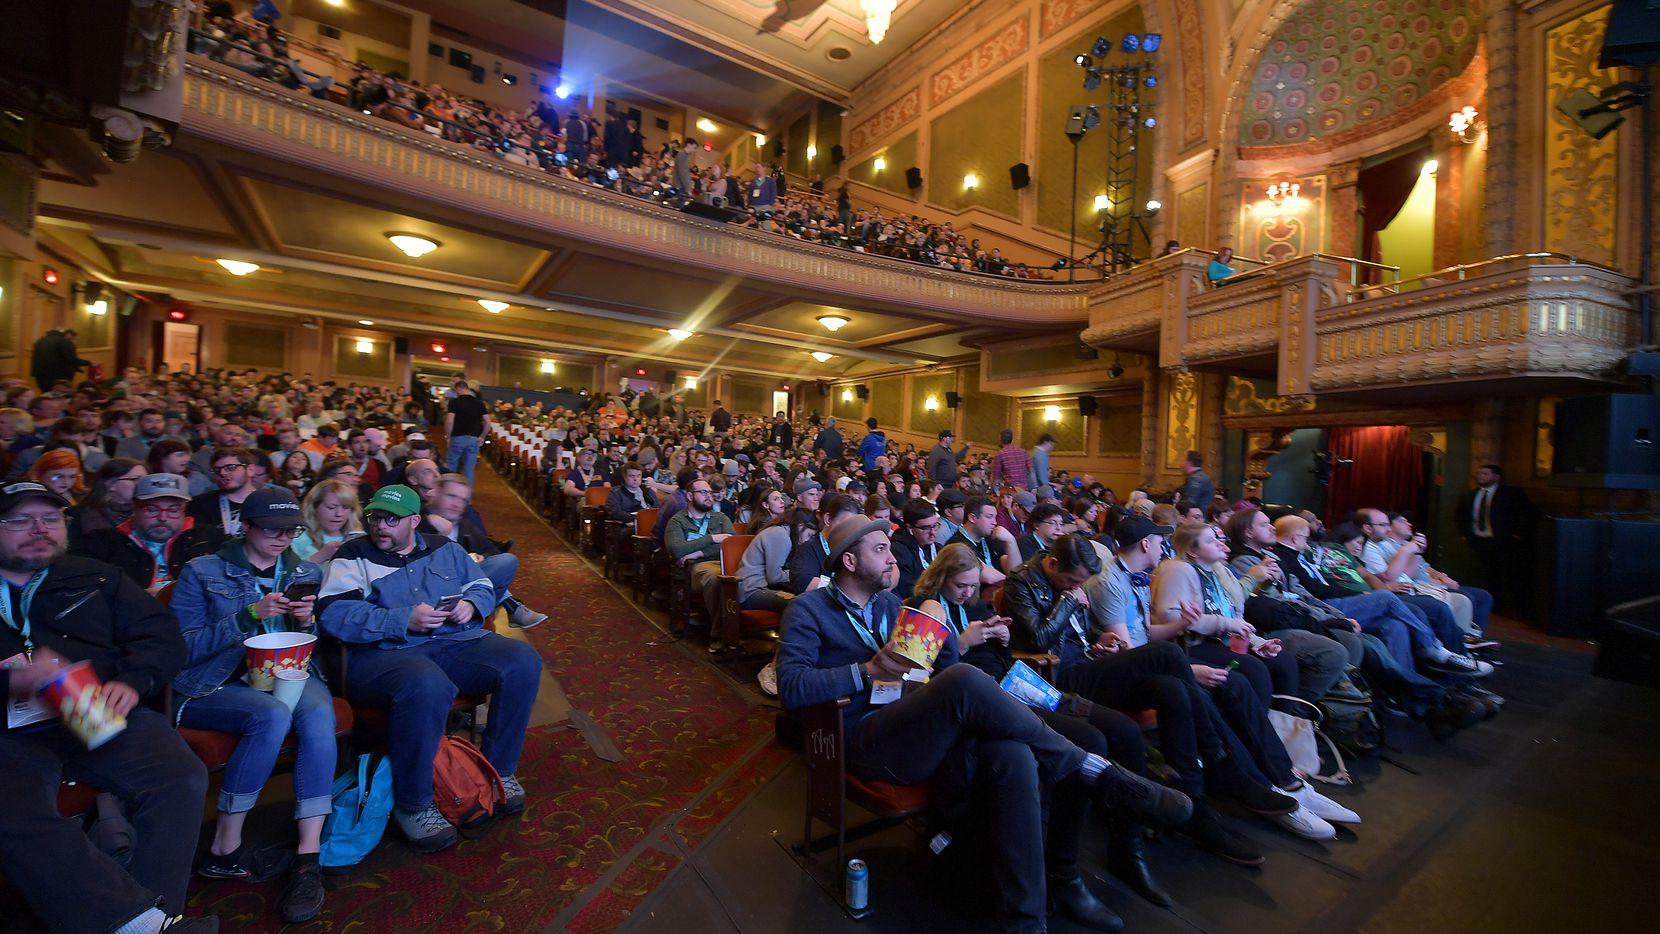 In this file photo from the SXSW Conference in March, 2019, an audience views the 'Pet Sematary' premiere at the packed Paramount Theatre  in Austin, Texas.